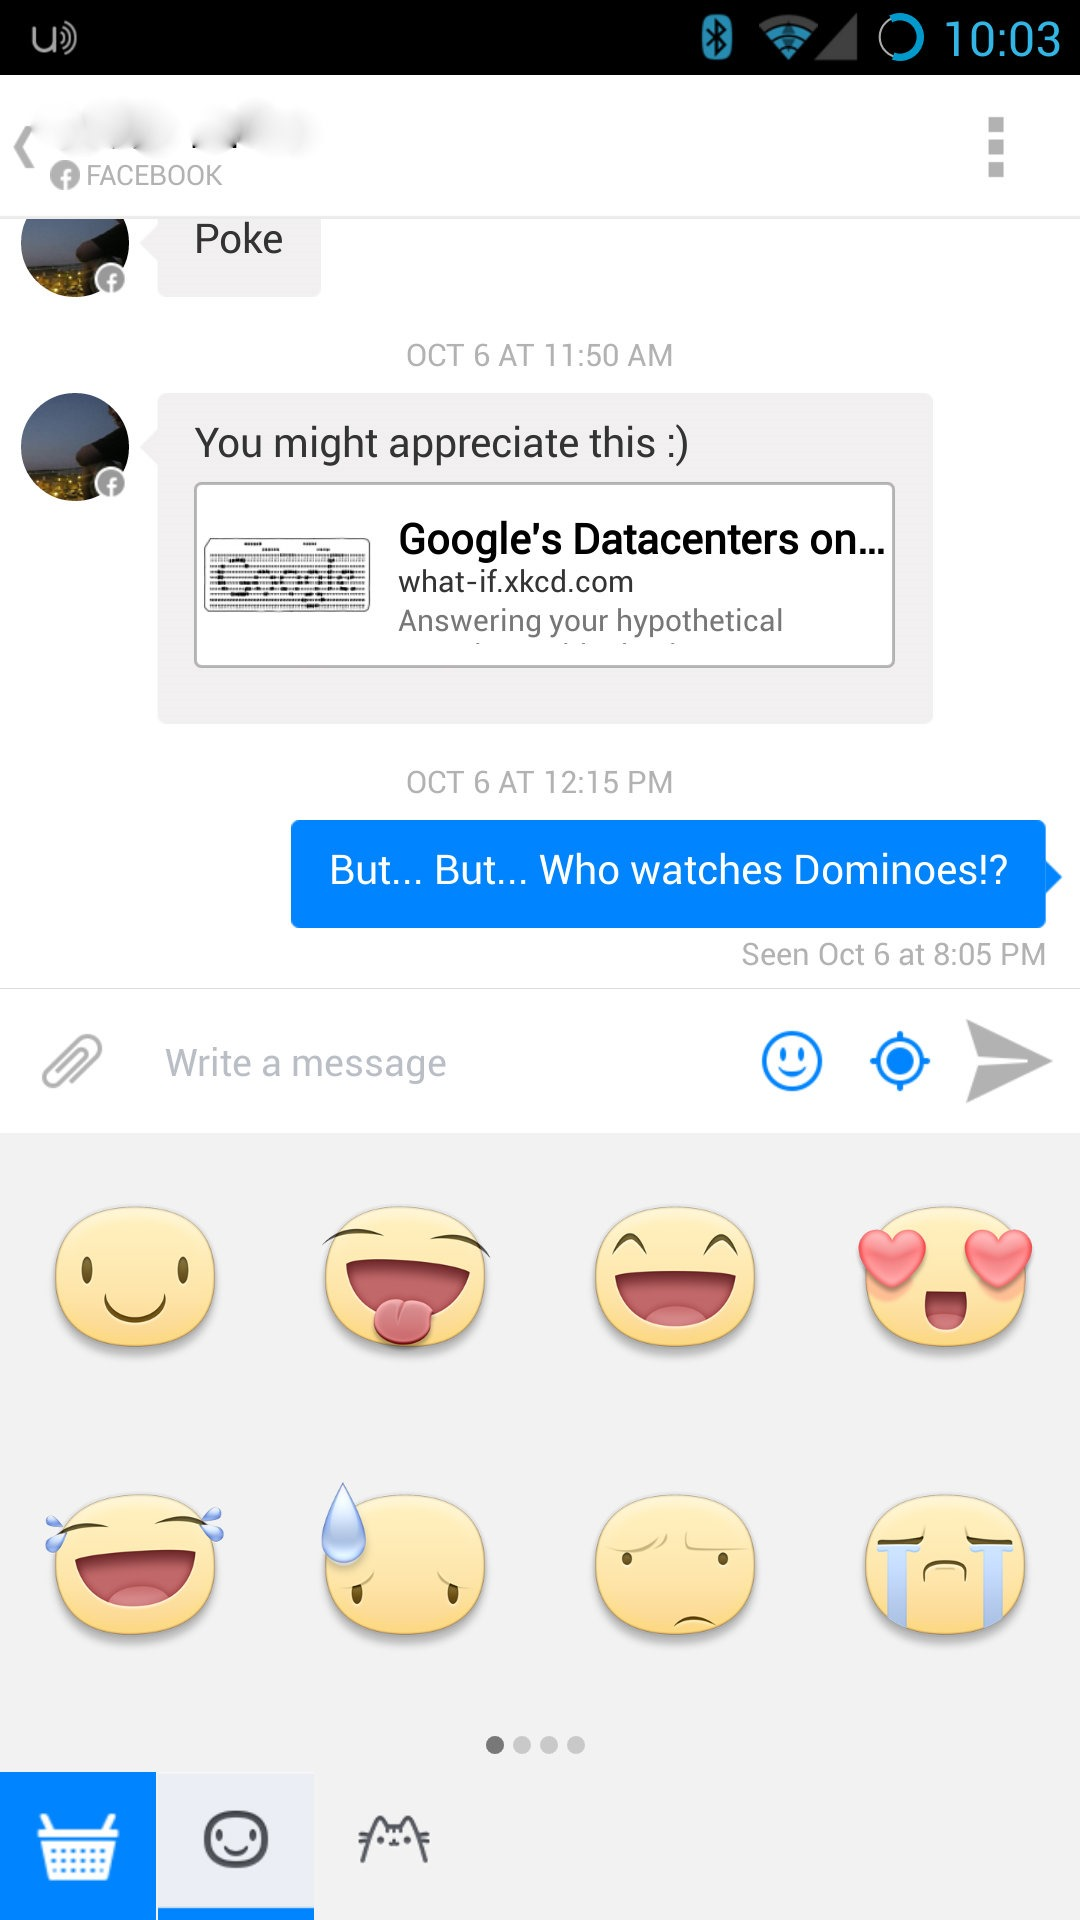 APK Download] The Redesigned Facebook Messenger Is Currently Only